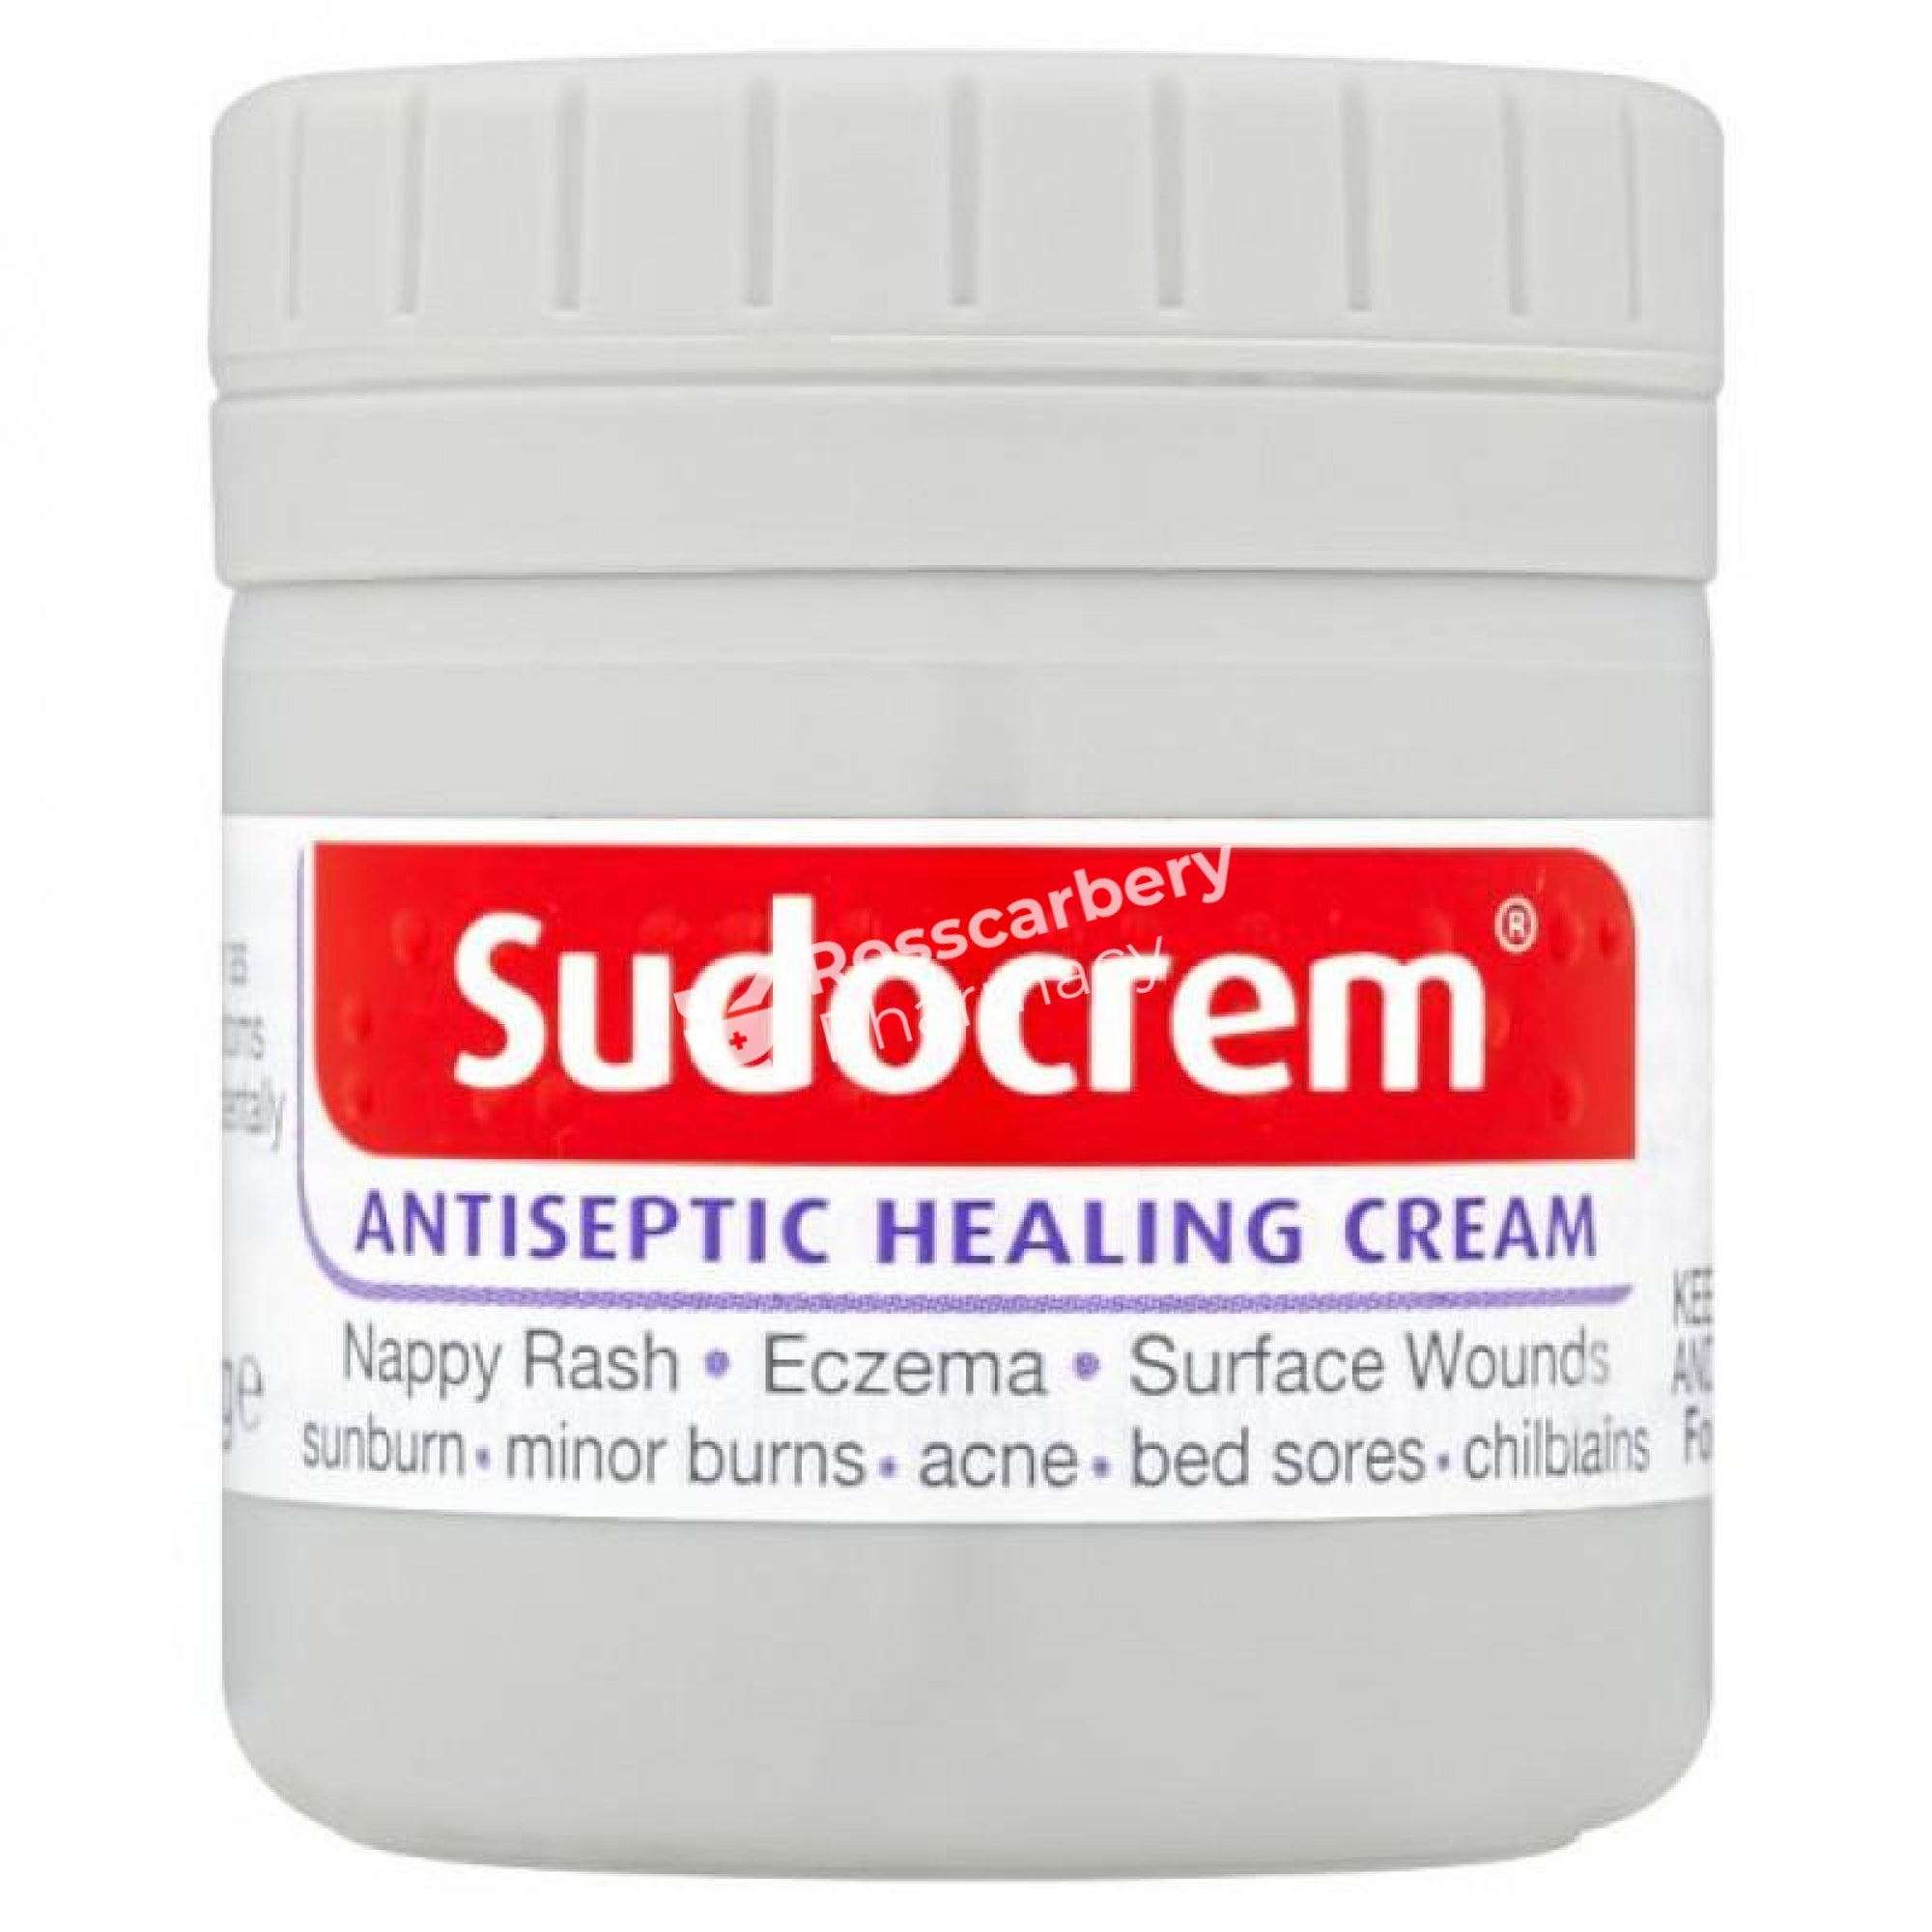 Sudocrem Antiseptic Healing Cream Tub & Wound